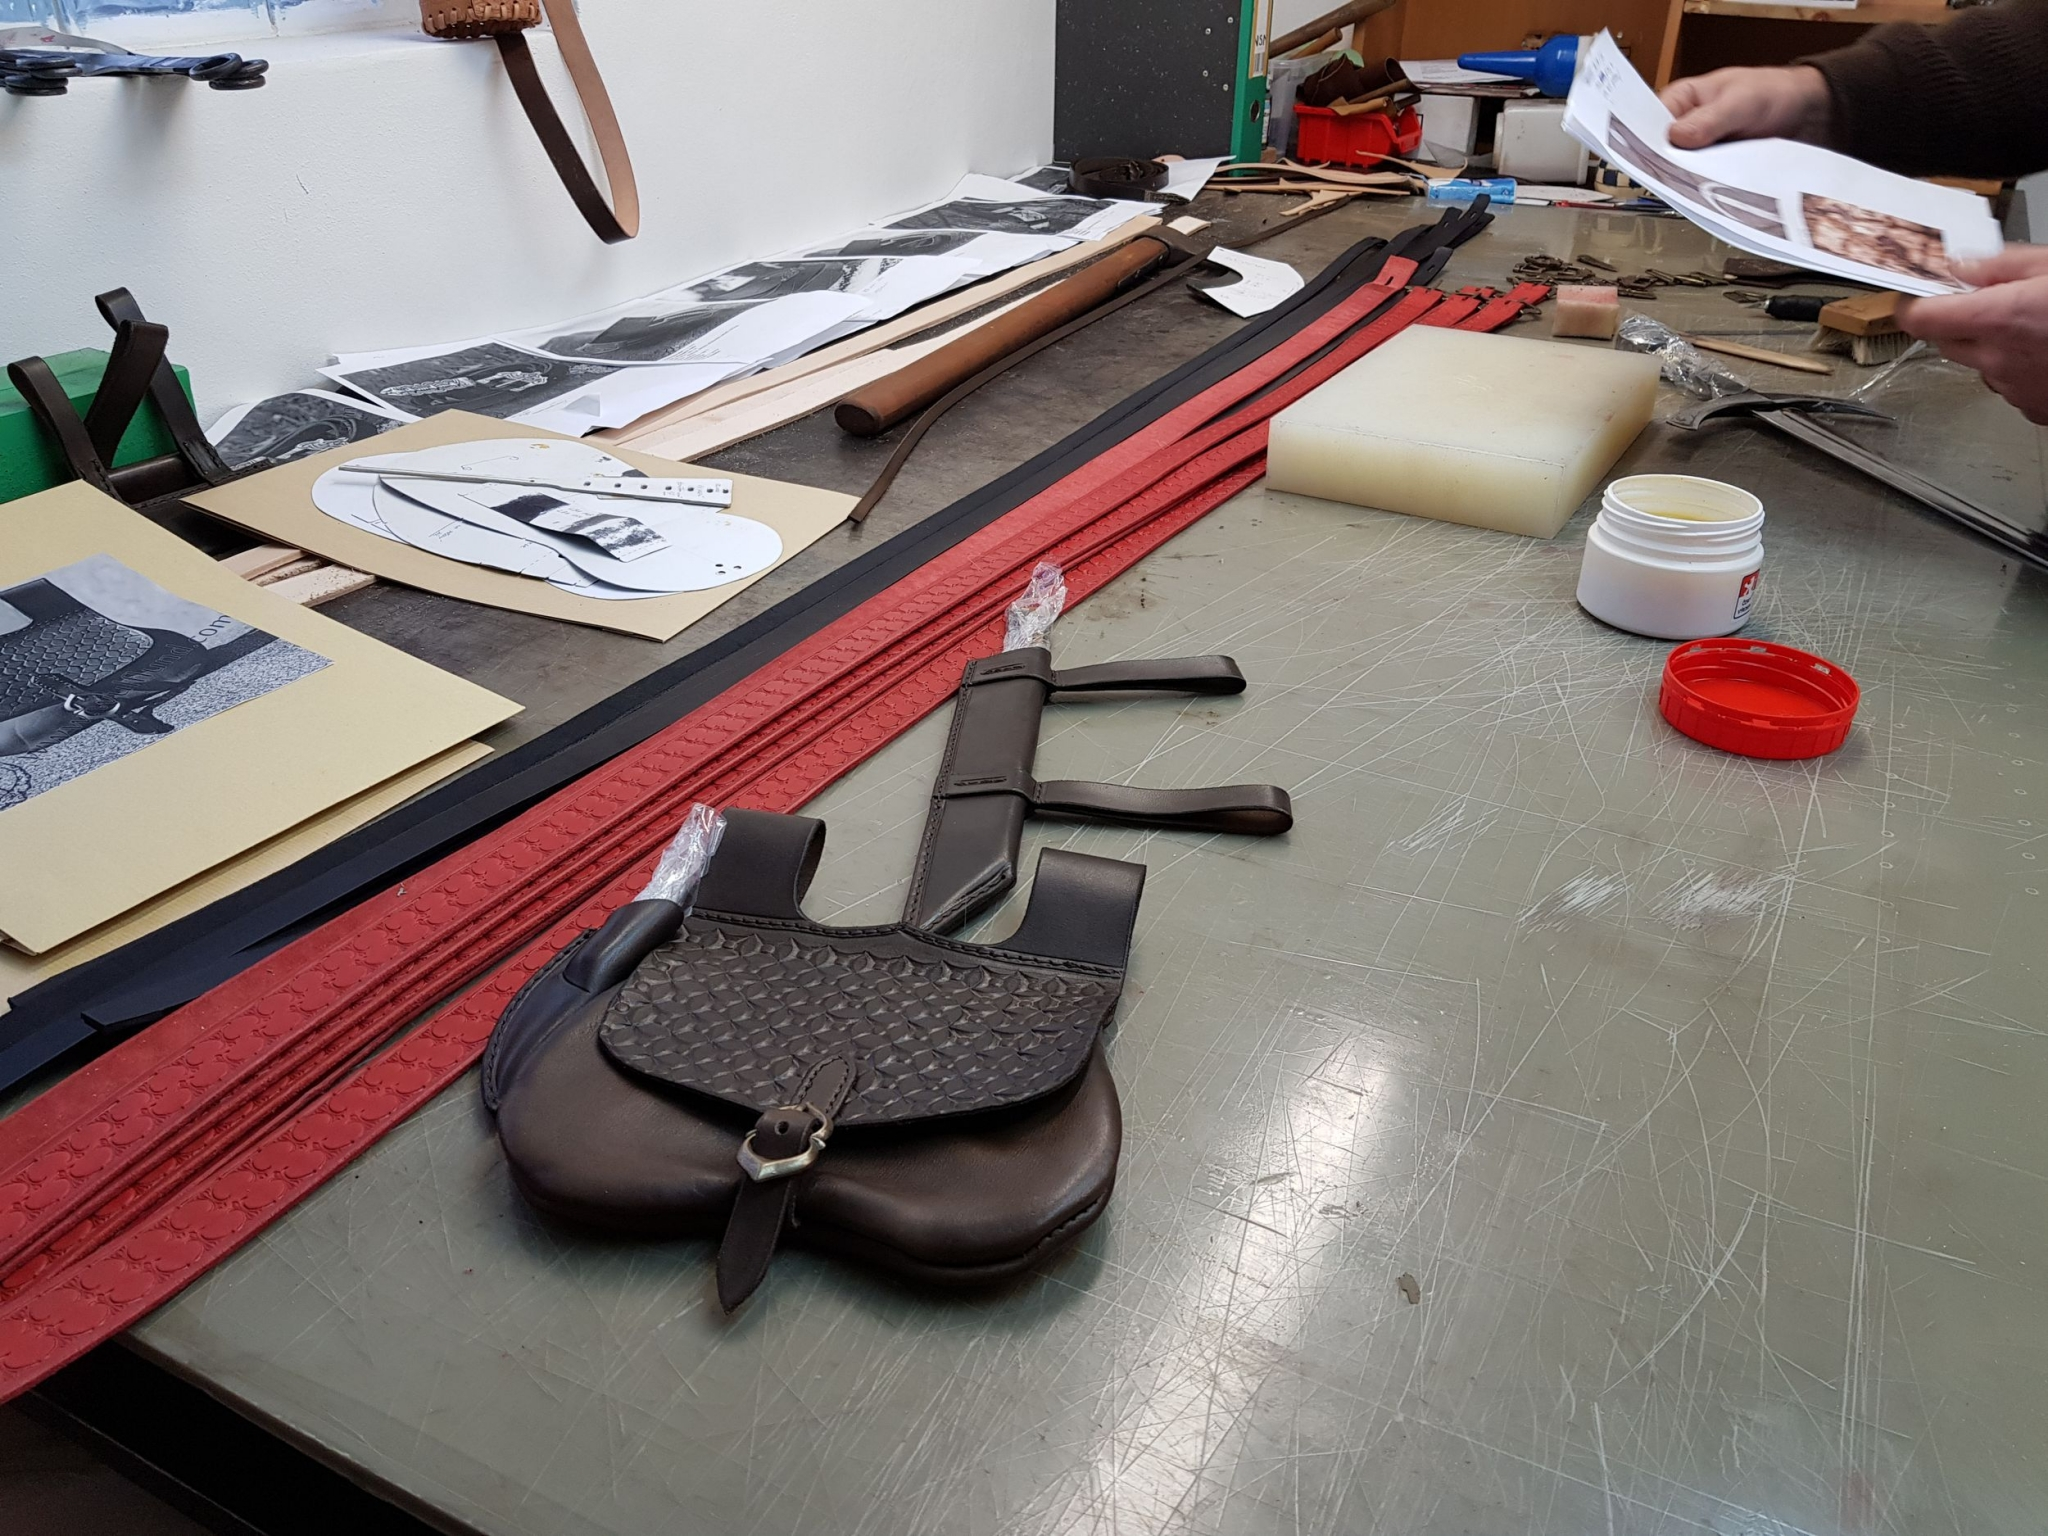 Saddlery workshop